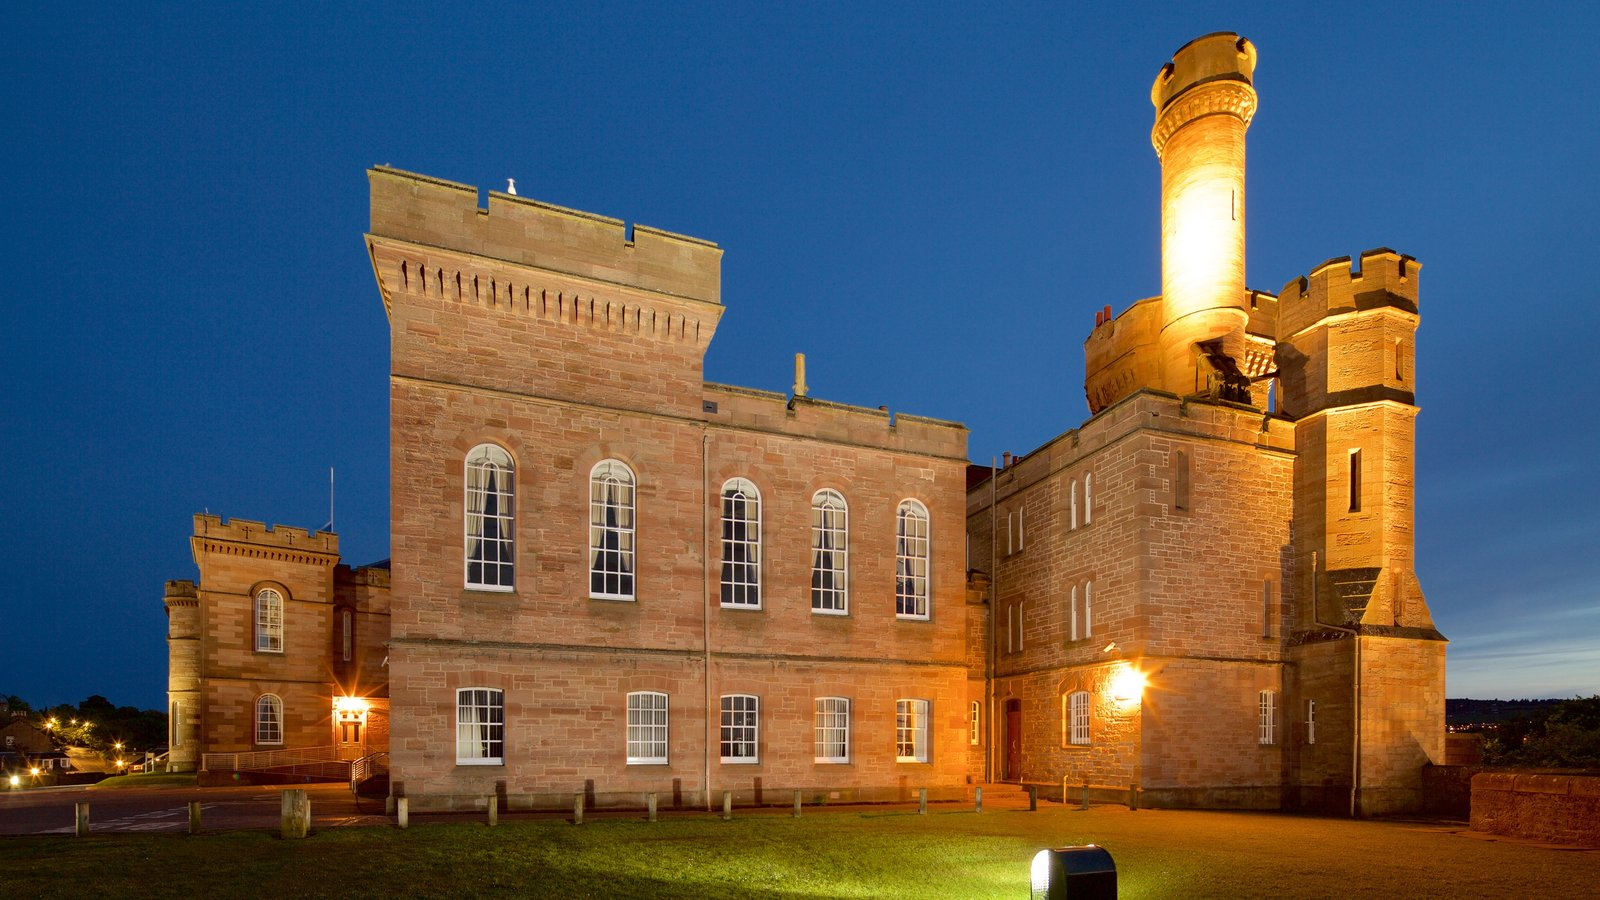 Inverness Castle showing chateau or palace, heritage architecture and heritage elements